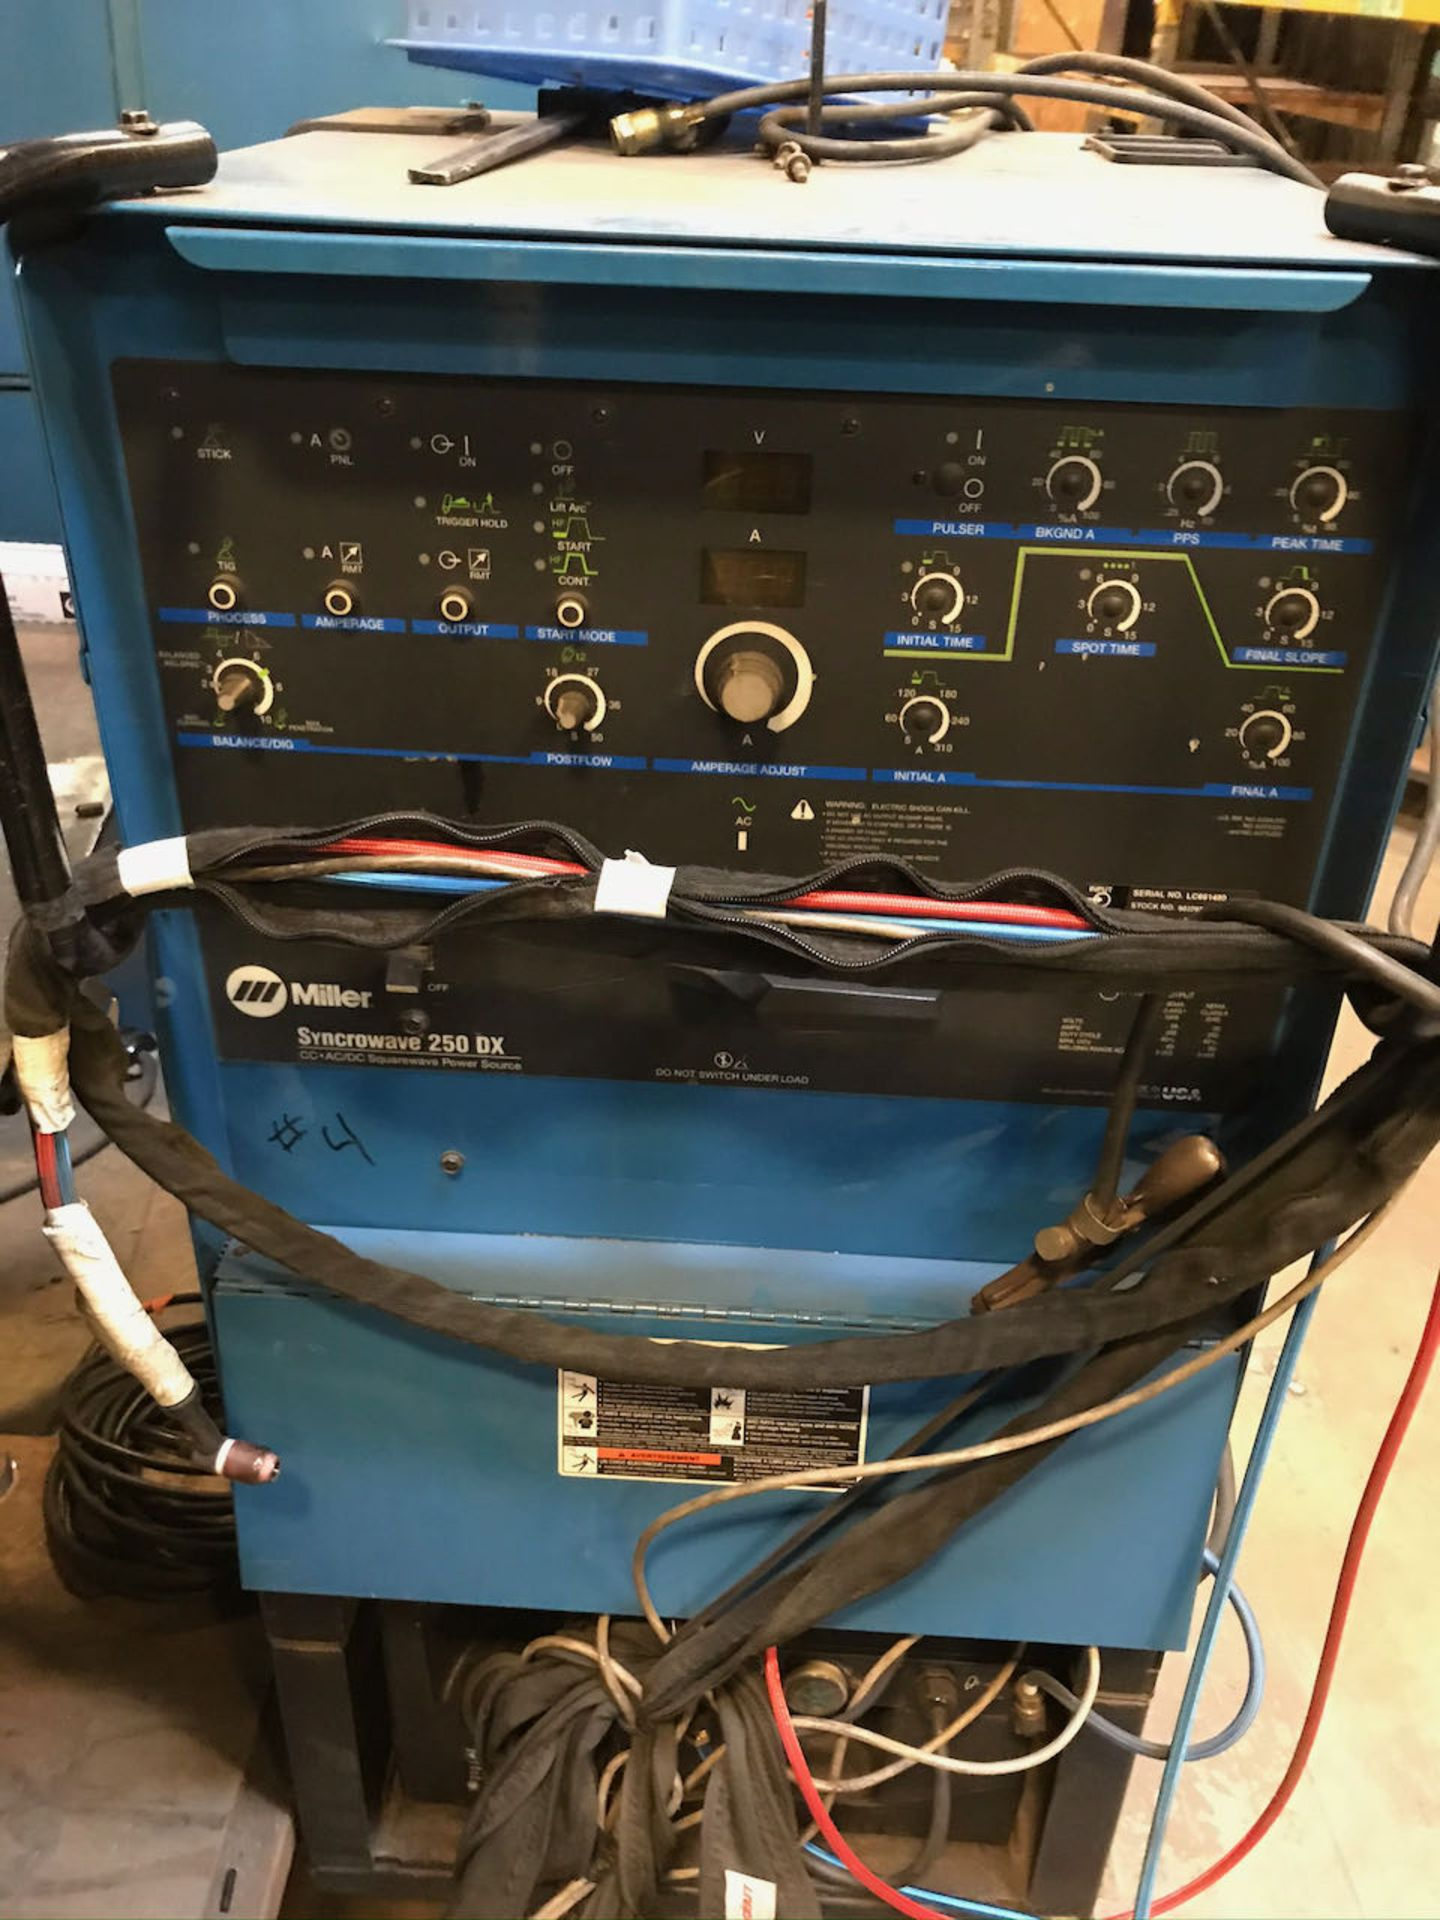 Miller Syncrowave 250 DX welder with work station